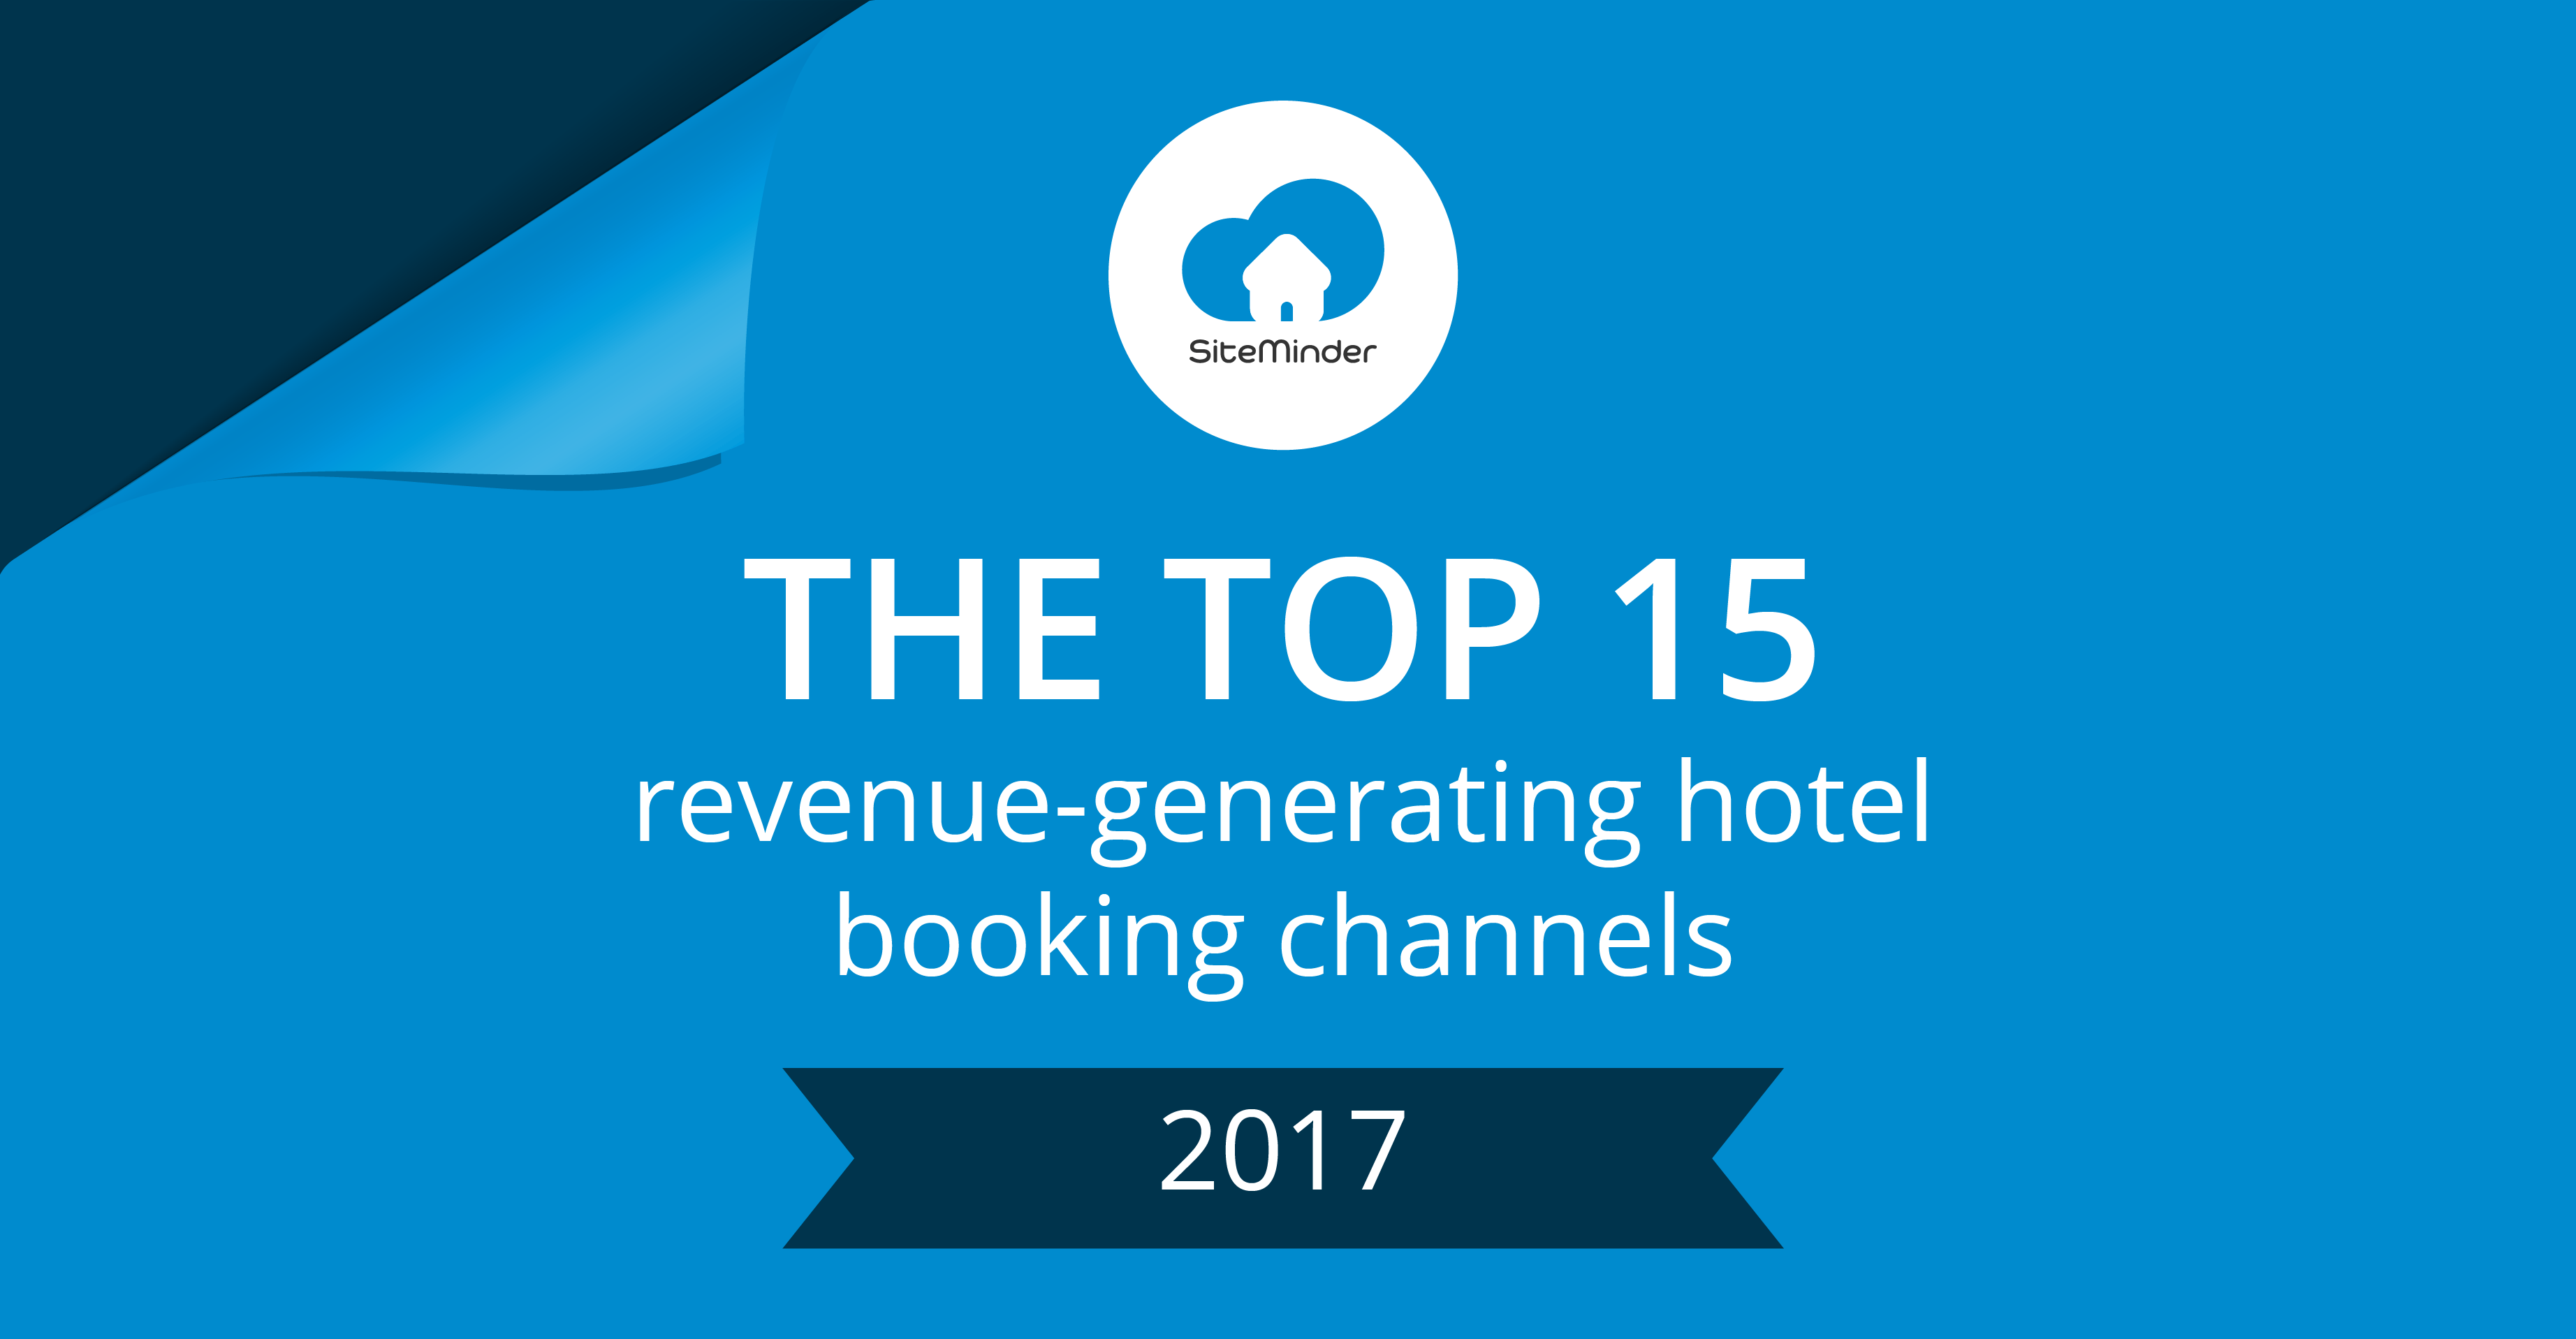 SiteMinder's top booking channels 2017